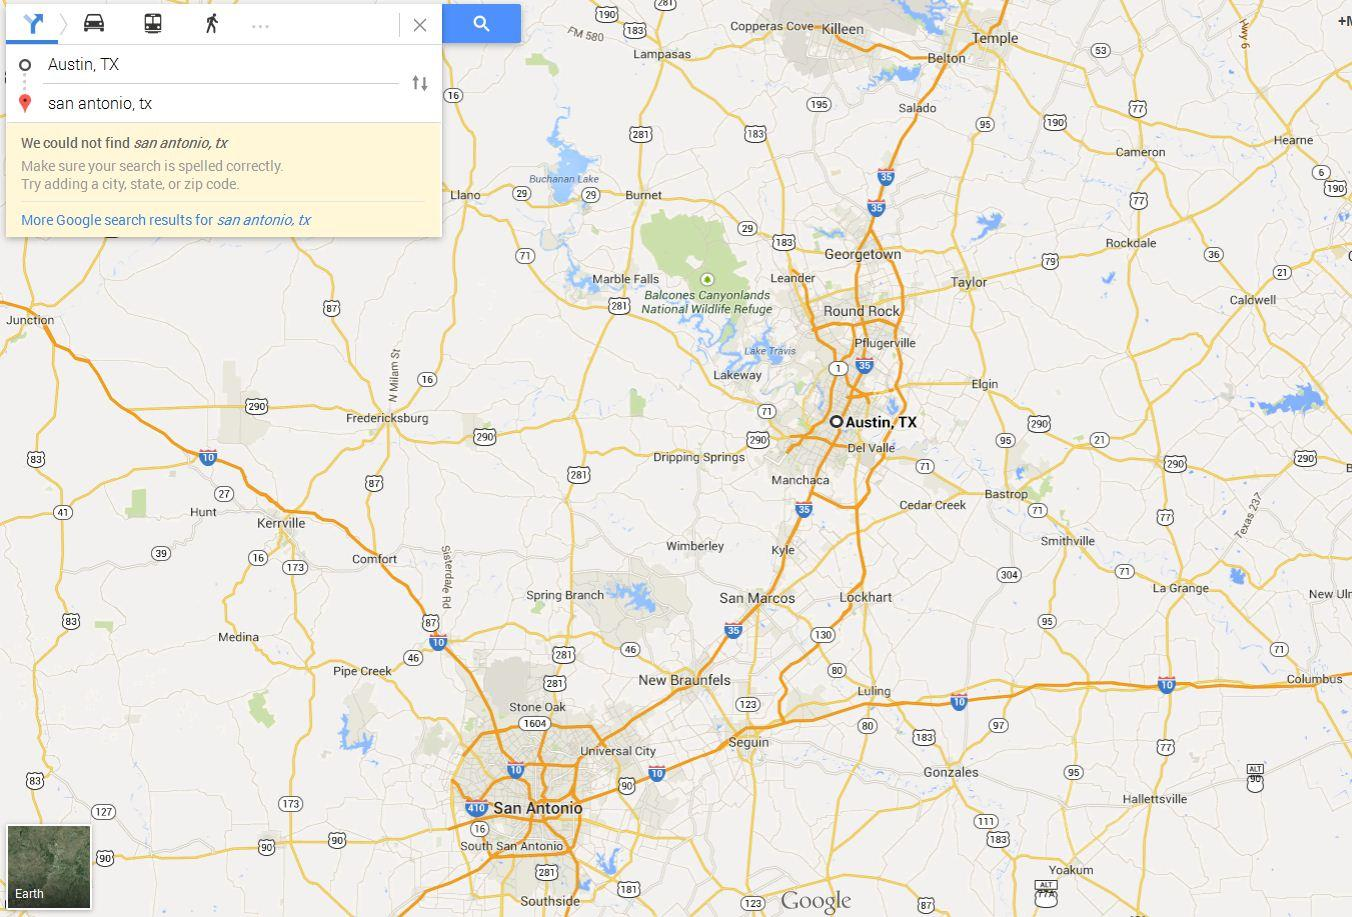 Map Program Austin Tx New Google Maps: Can't find San Antonio Texas   Google Maps Help